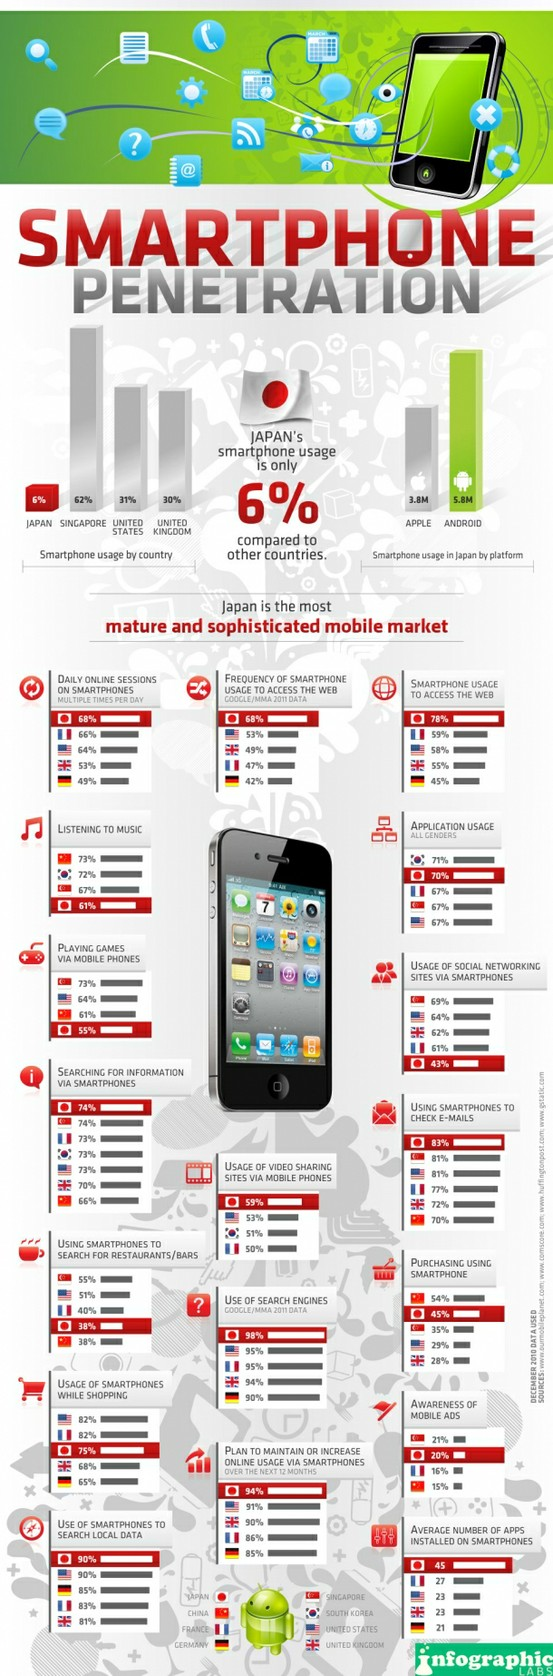 Smartphone-Penetration-infographic